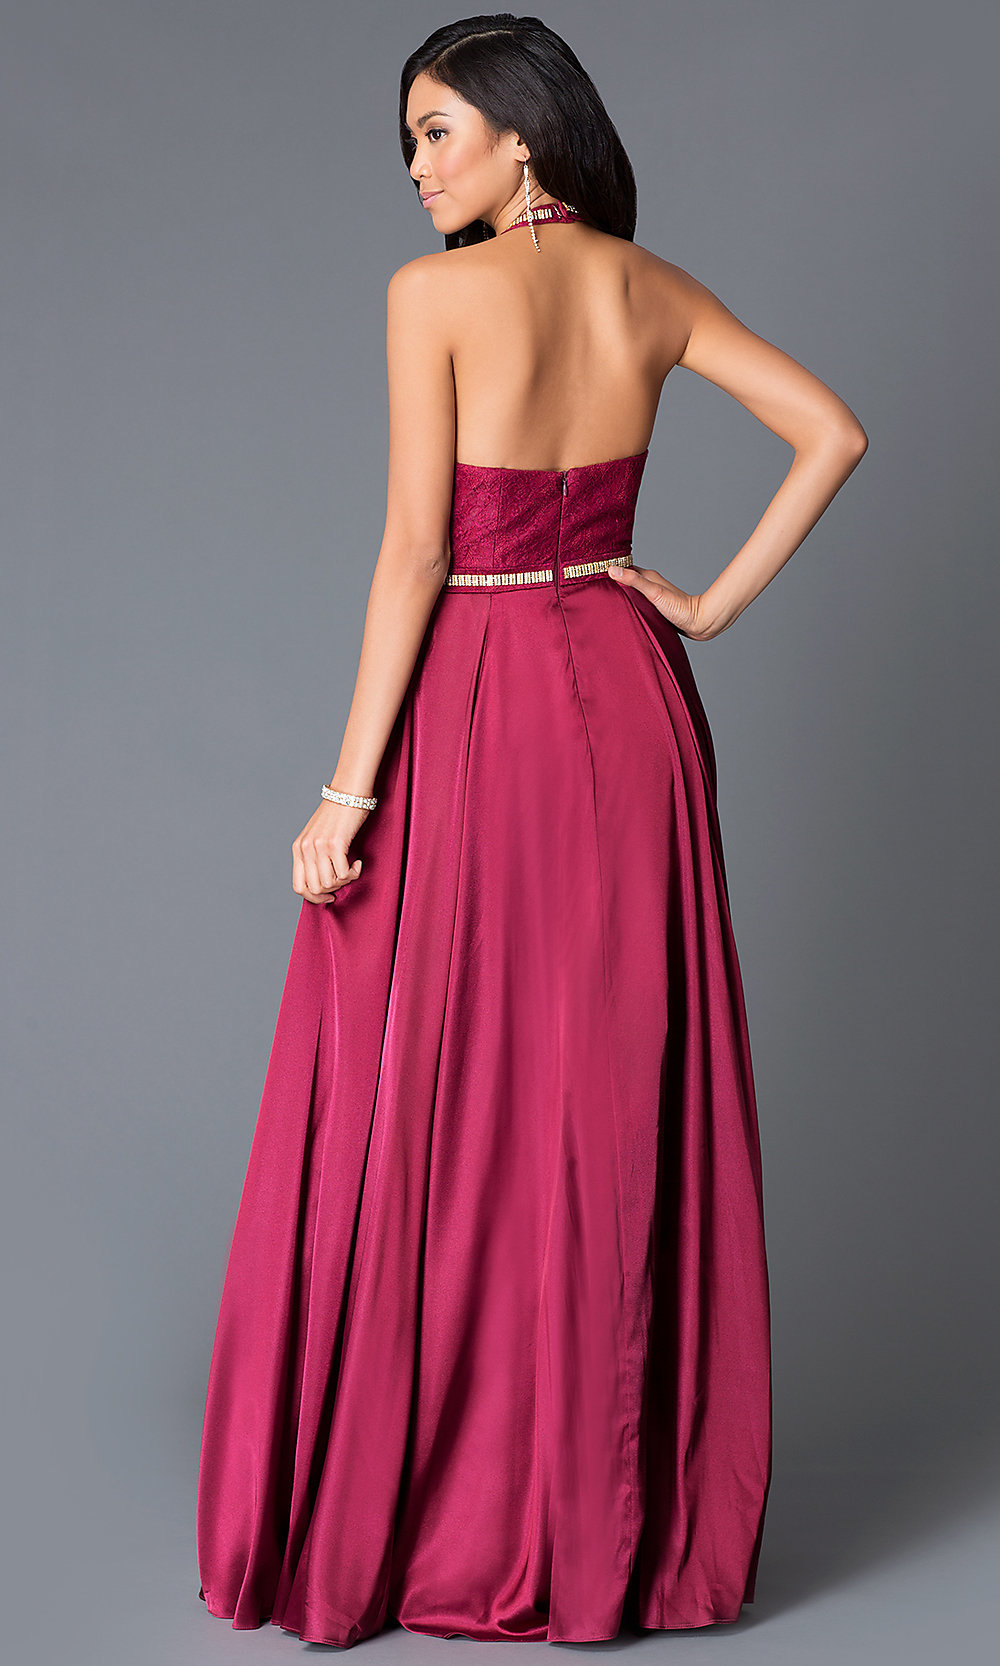 Halter top long dresses